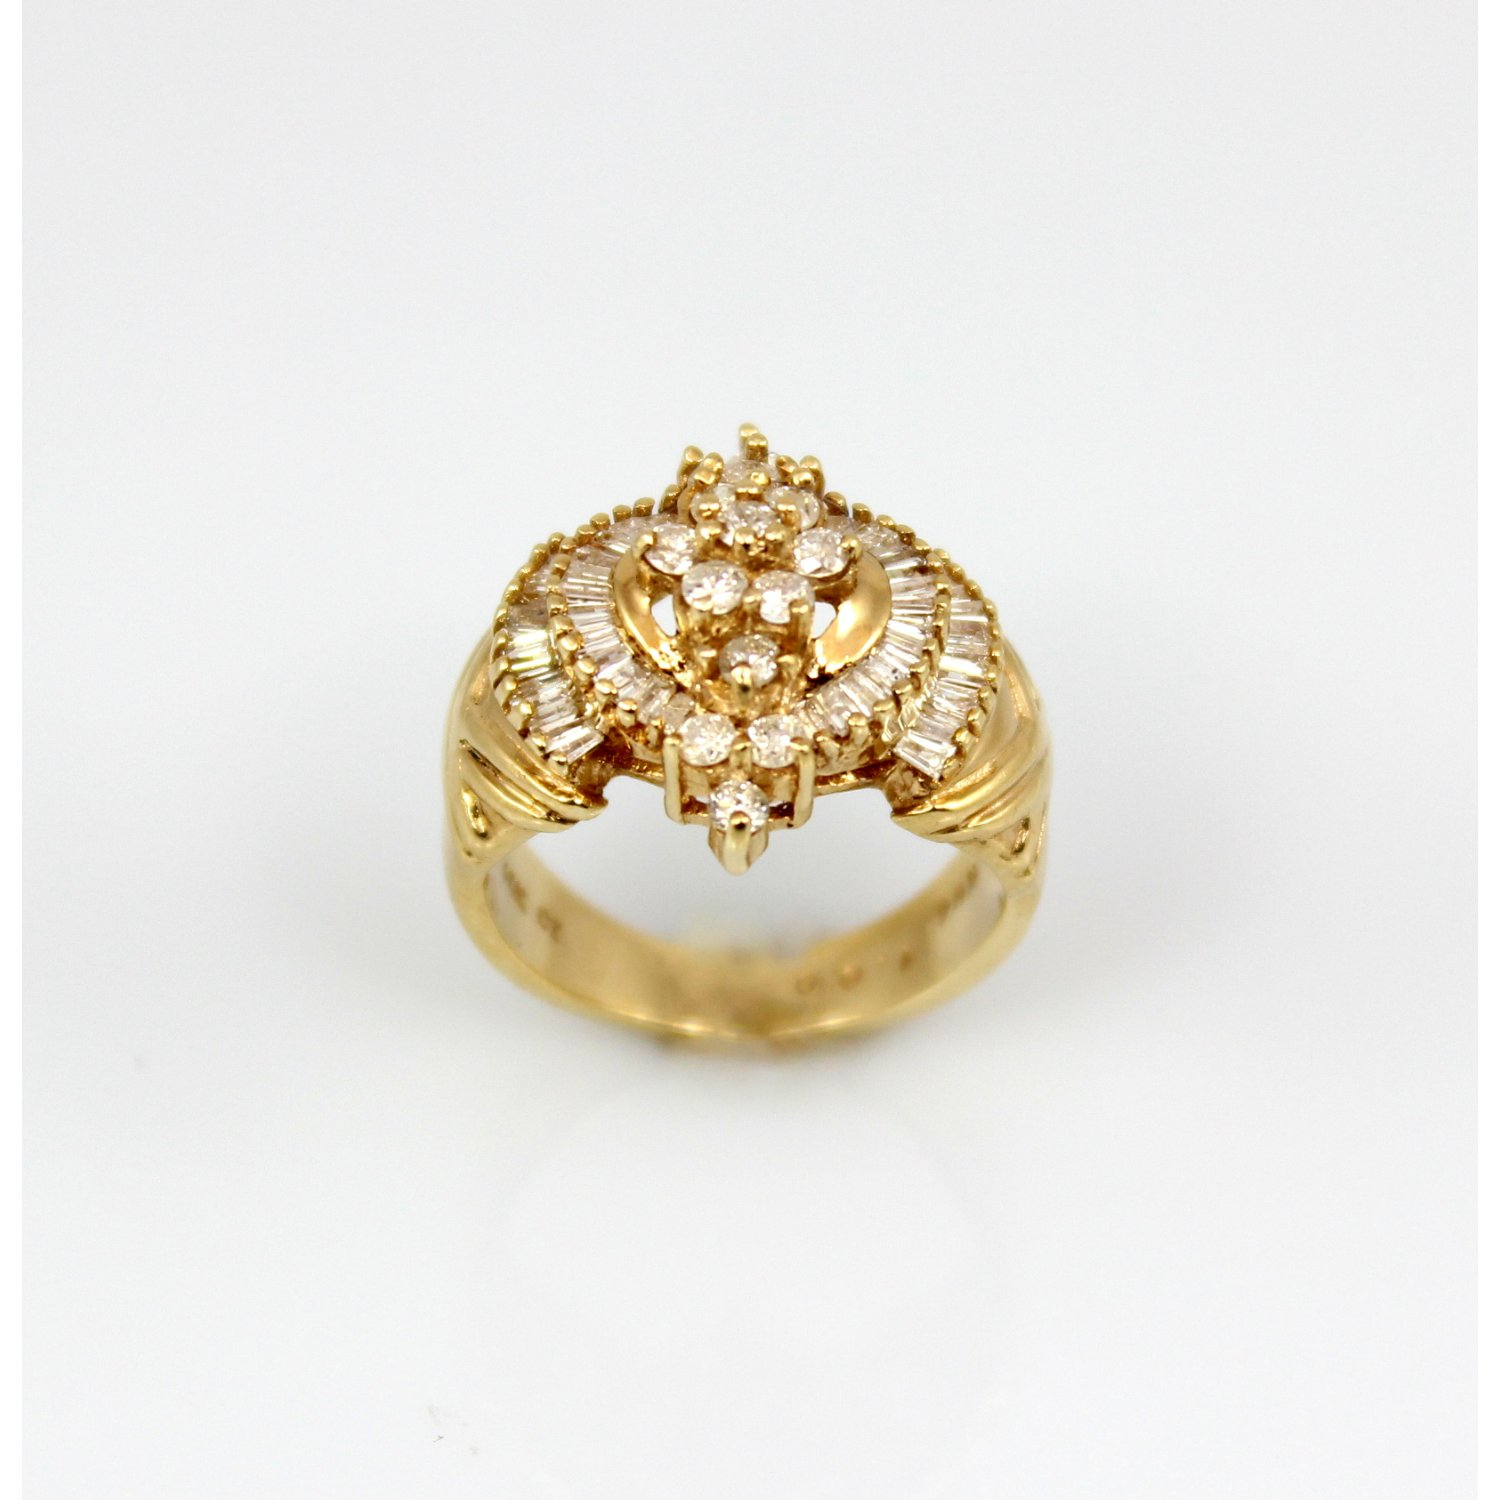 14K-Diamond-Cocktail-Ring_73008A.jpg